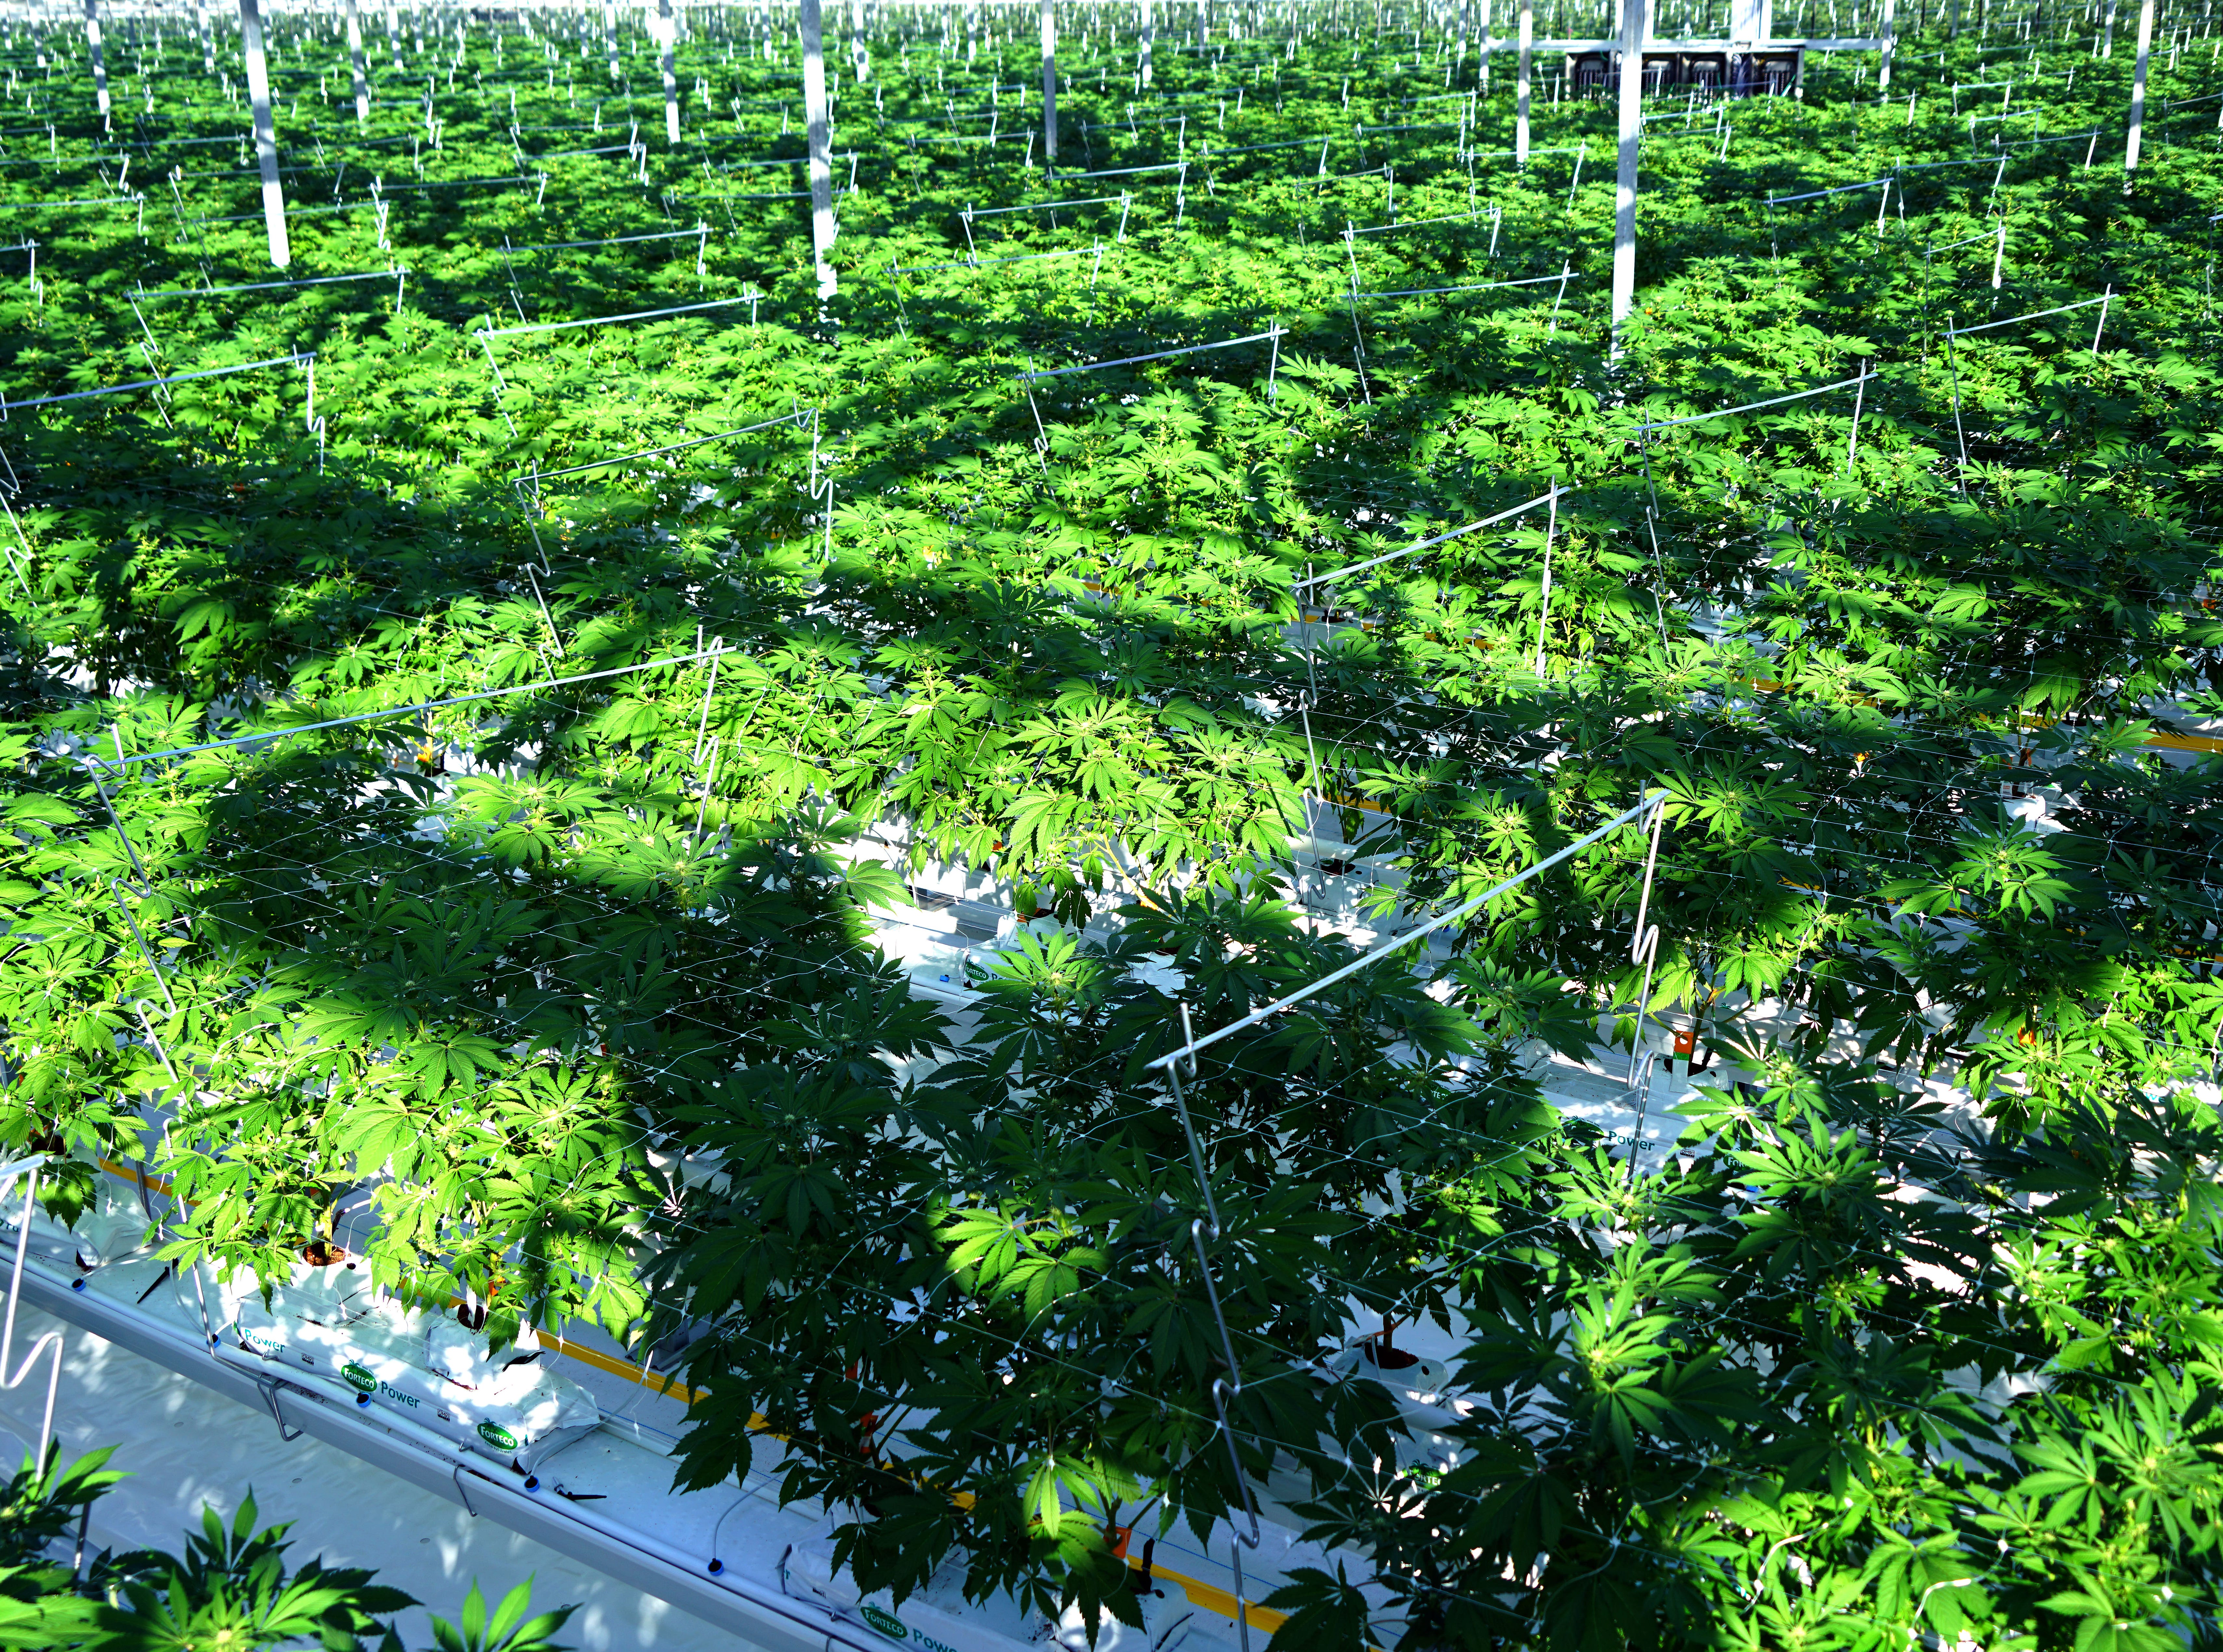 An estimated 9,000 marijuana plants grow inside a sunny greenhouse in Delta, British Columbia at marijuana producer Pure Sunfarms. This greenhouse represents about 25 percent of the farm's capacity.